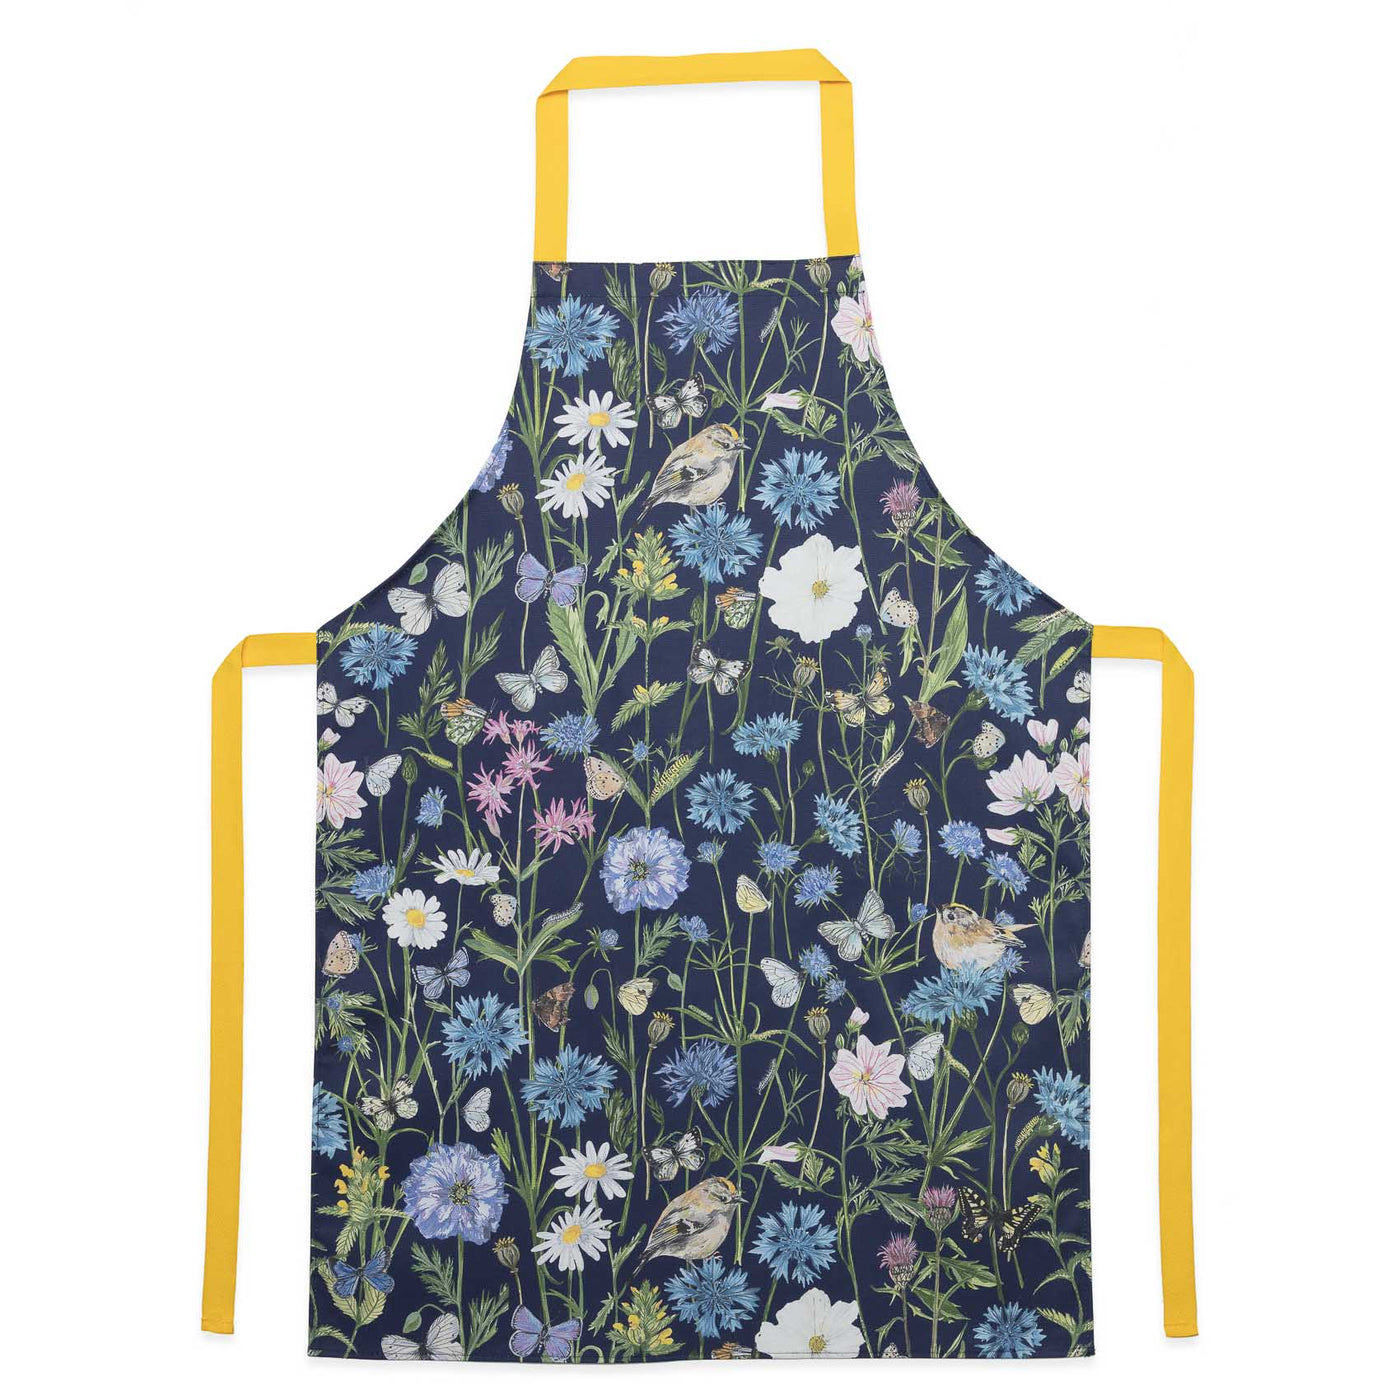 Bright and colourful bird and floral apron. Ideal for baking, a excellent gift for anyone that loves baking and nature, or lives in the countryside. Navy blue with yellow waist ties. Original apintings are used to create this pattern, including Goldcrests, 17 diffrent types of British Butterflies, Cornflowers, thistles, common mallow and poppies.